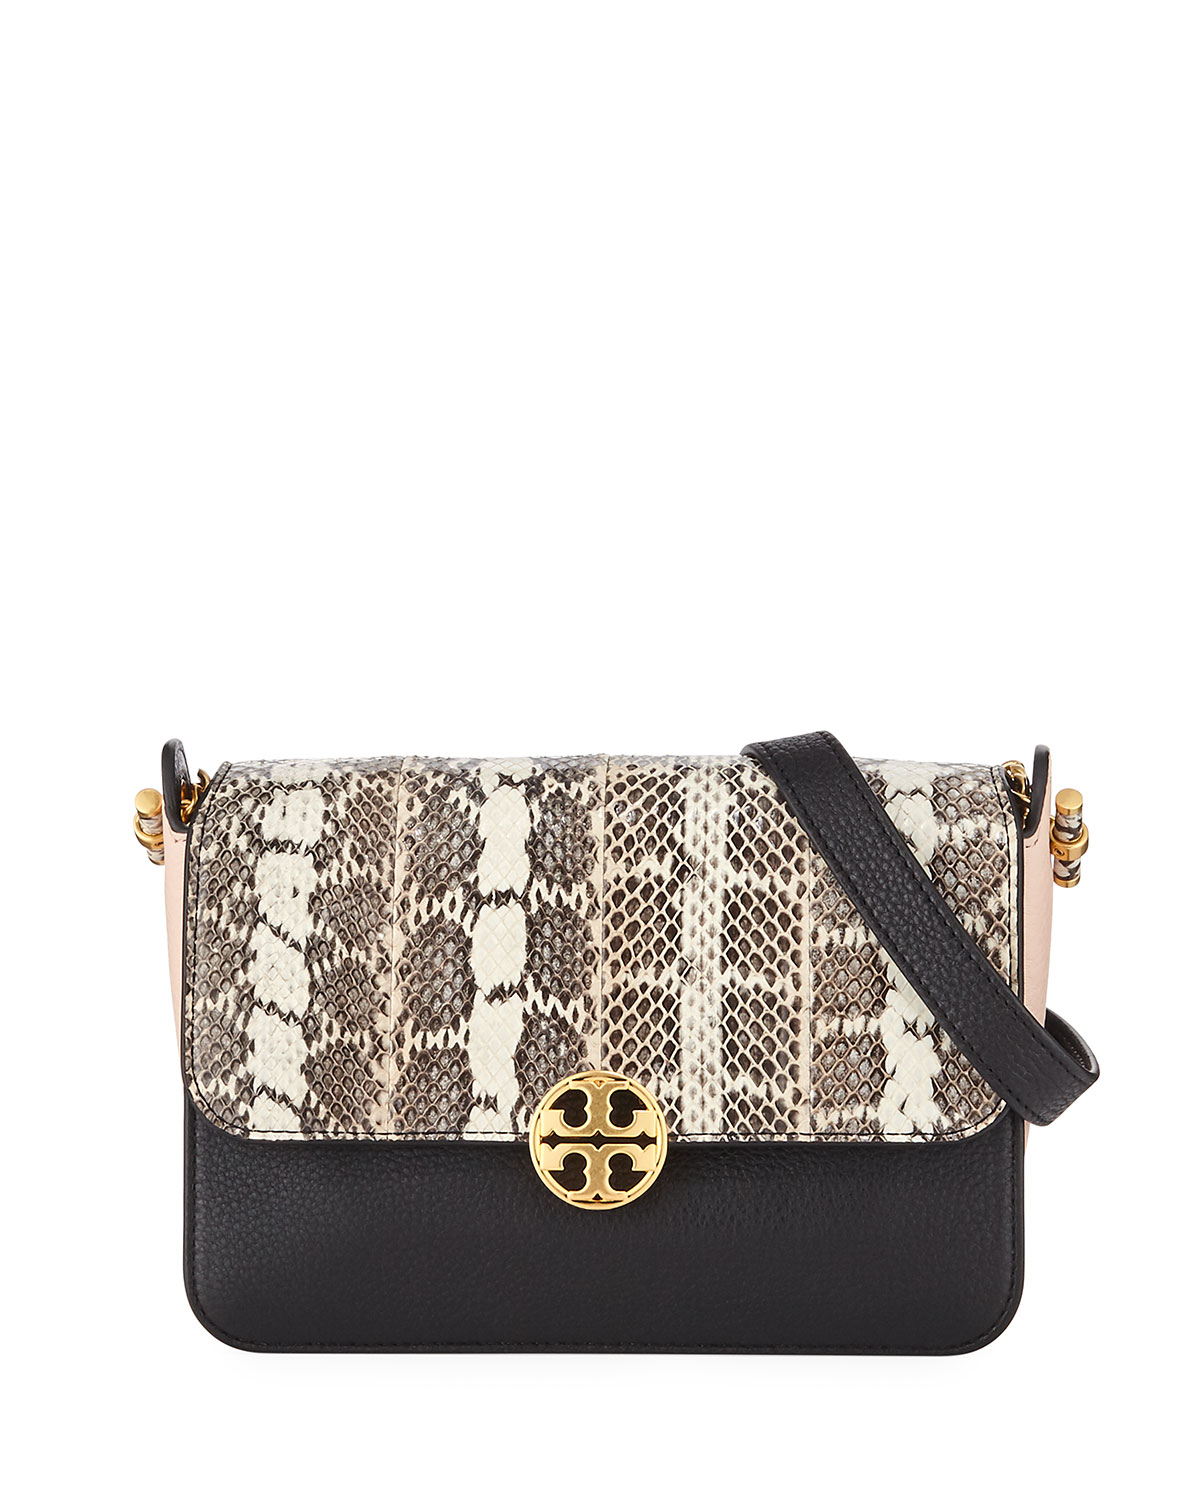 713a4ddd32df55 Tory Burch Chelsea Colorblock Snake Crossbody Bag | Neiman Marcus